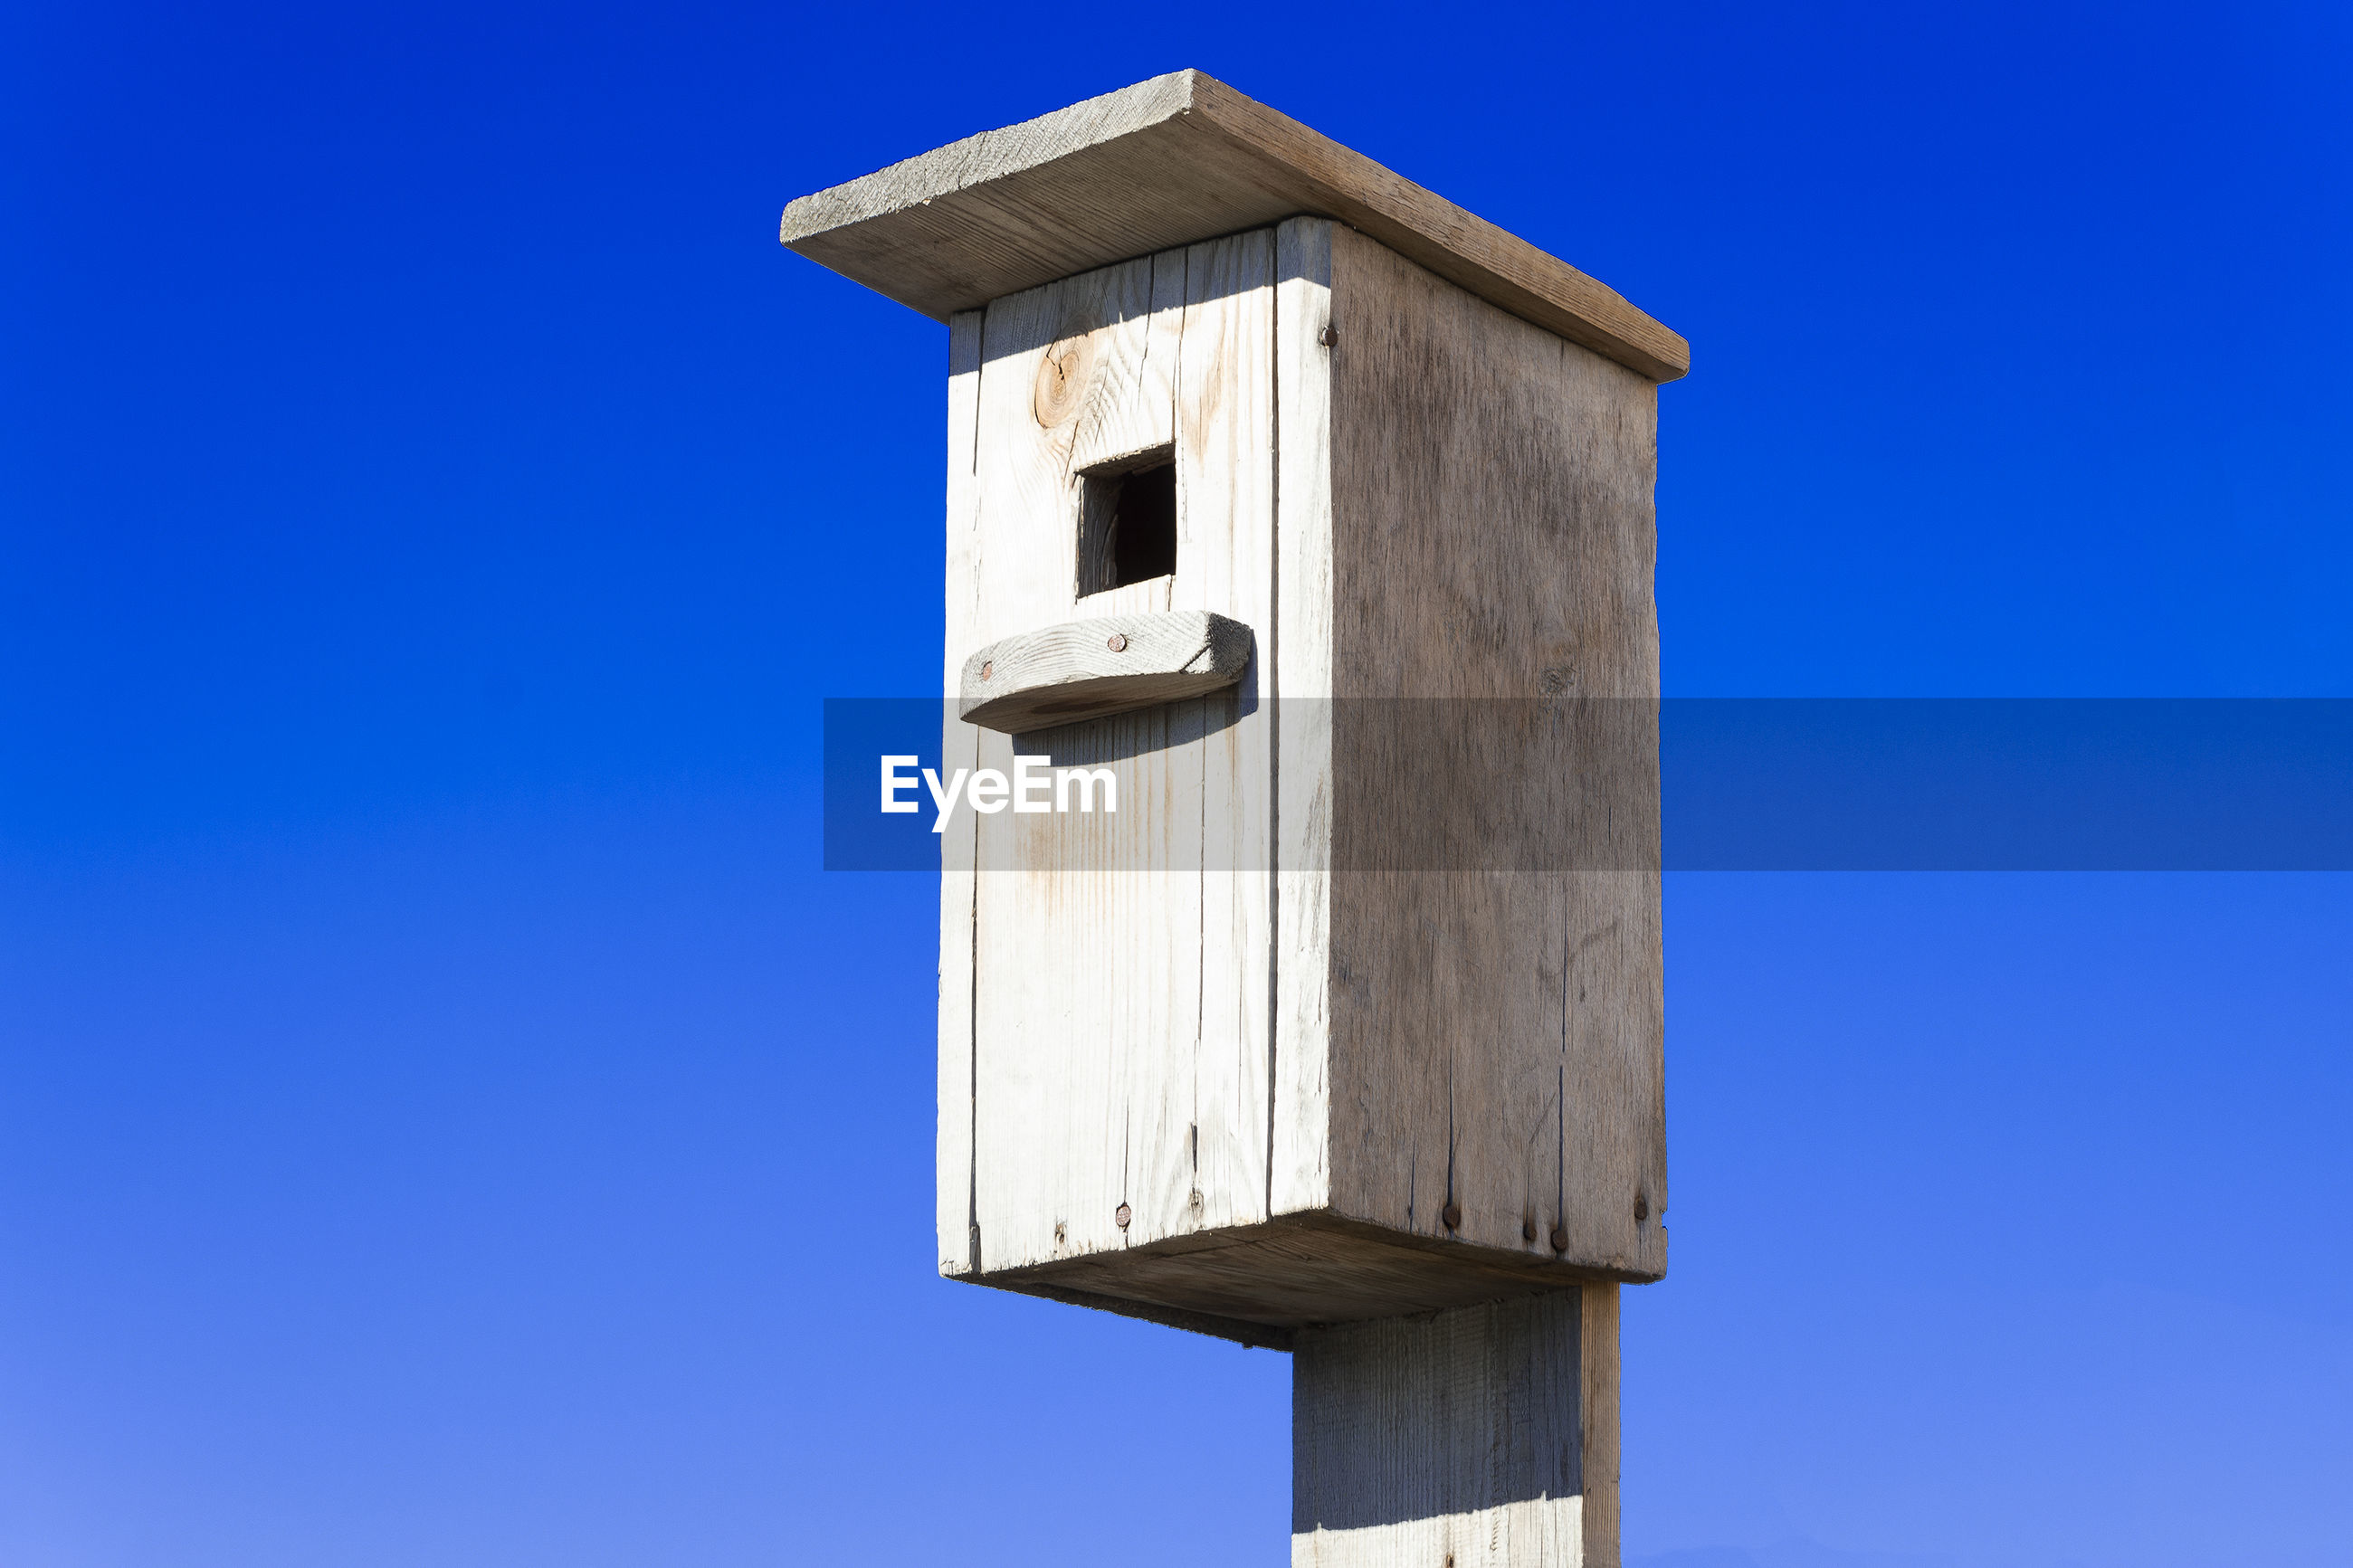 Low angle view of bird house against clear blue sky